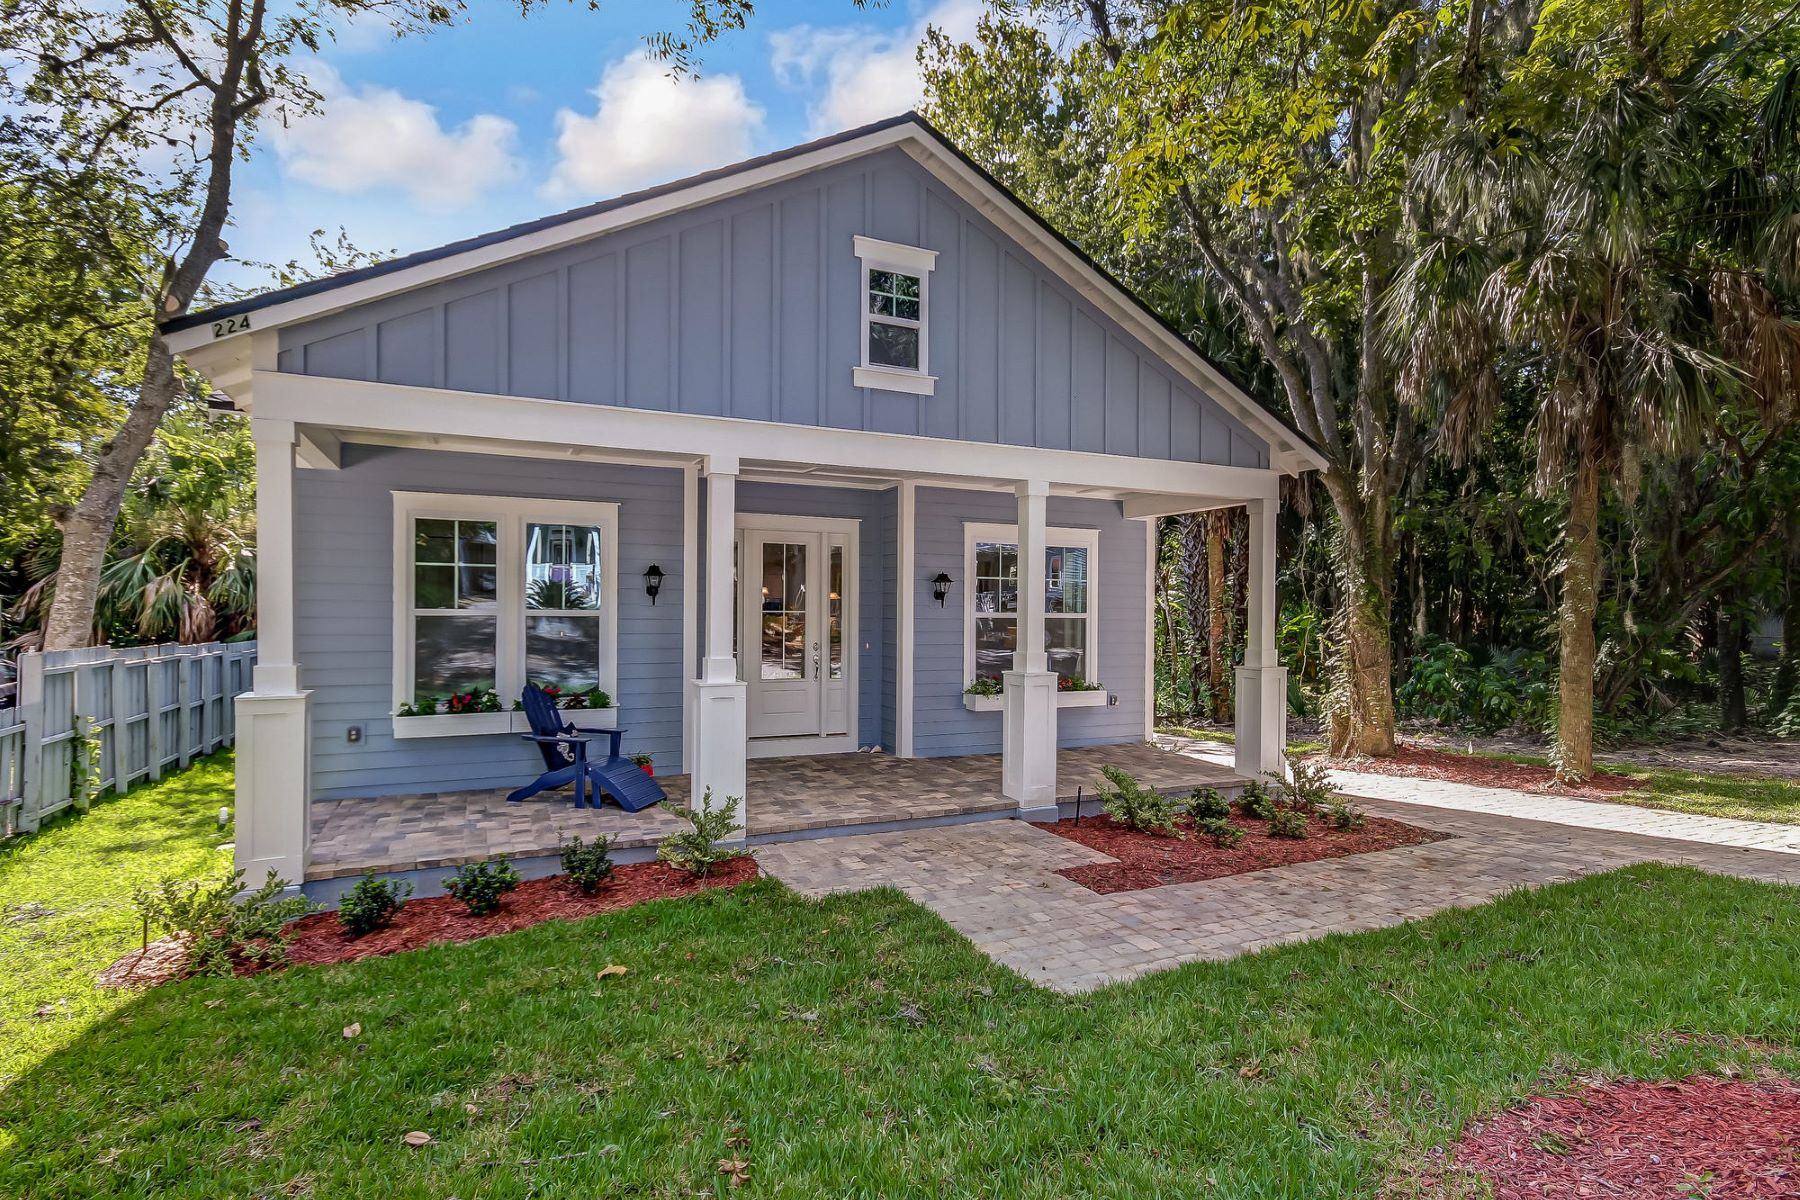 Single Family Home for Sale at Craftsman-style Bungalow in the Heart of Downtown Fernandina Beach 224 North 6th Street Fernandina Beach, Florida 32034 United States